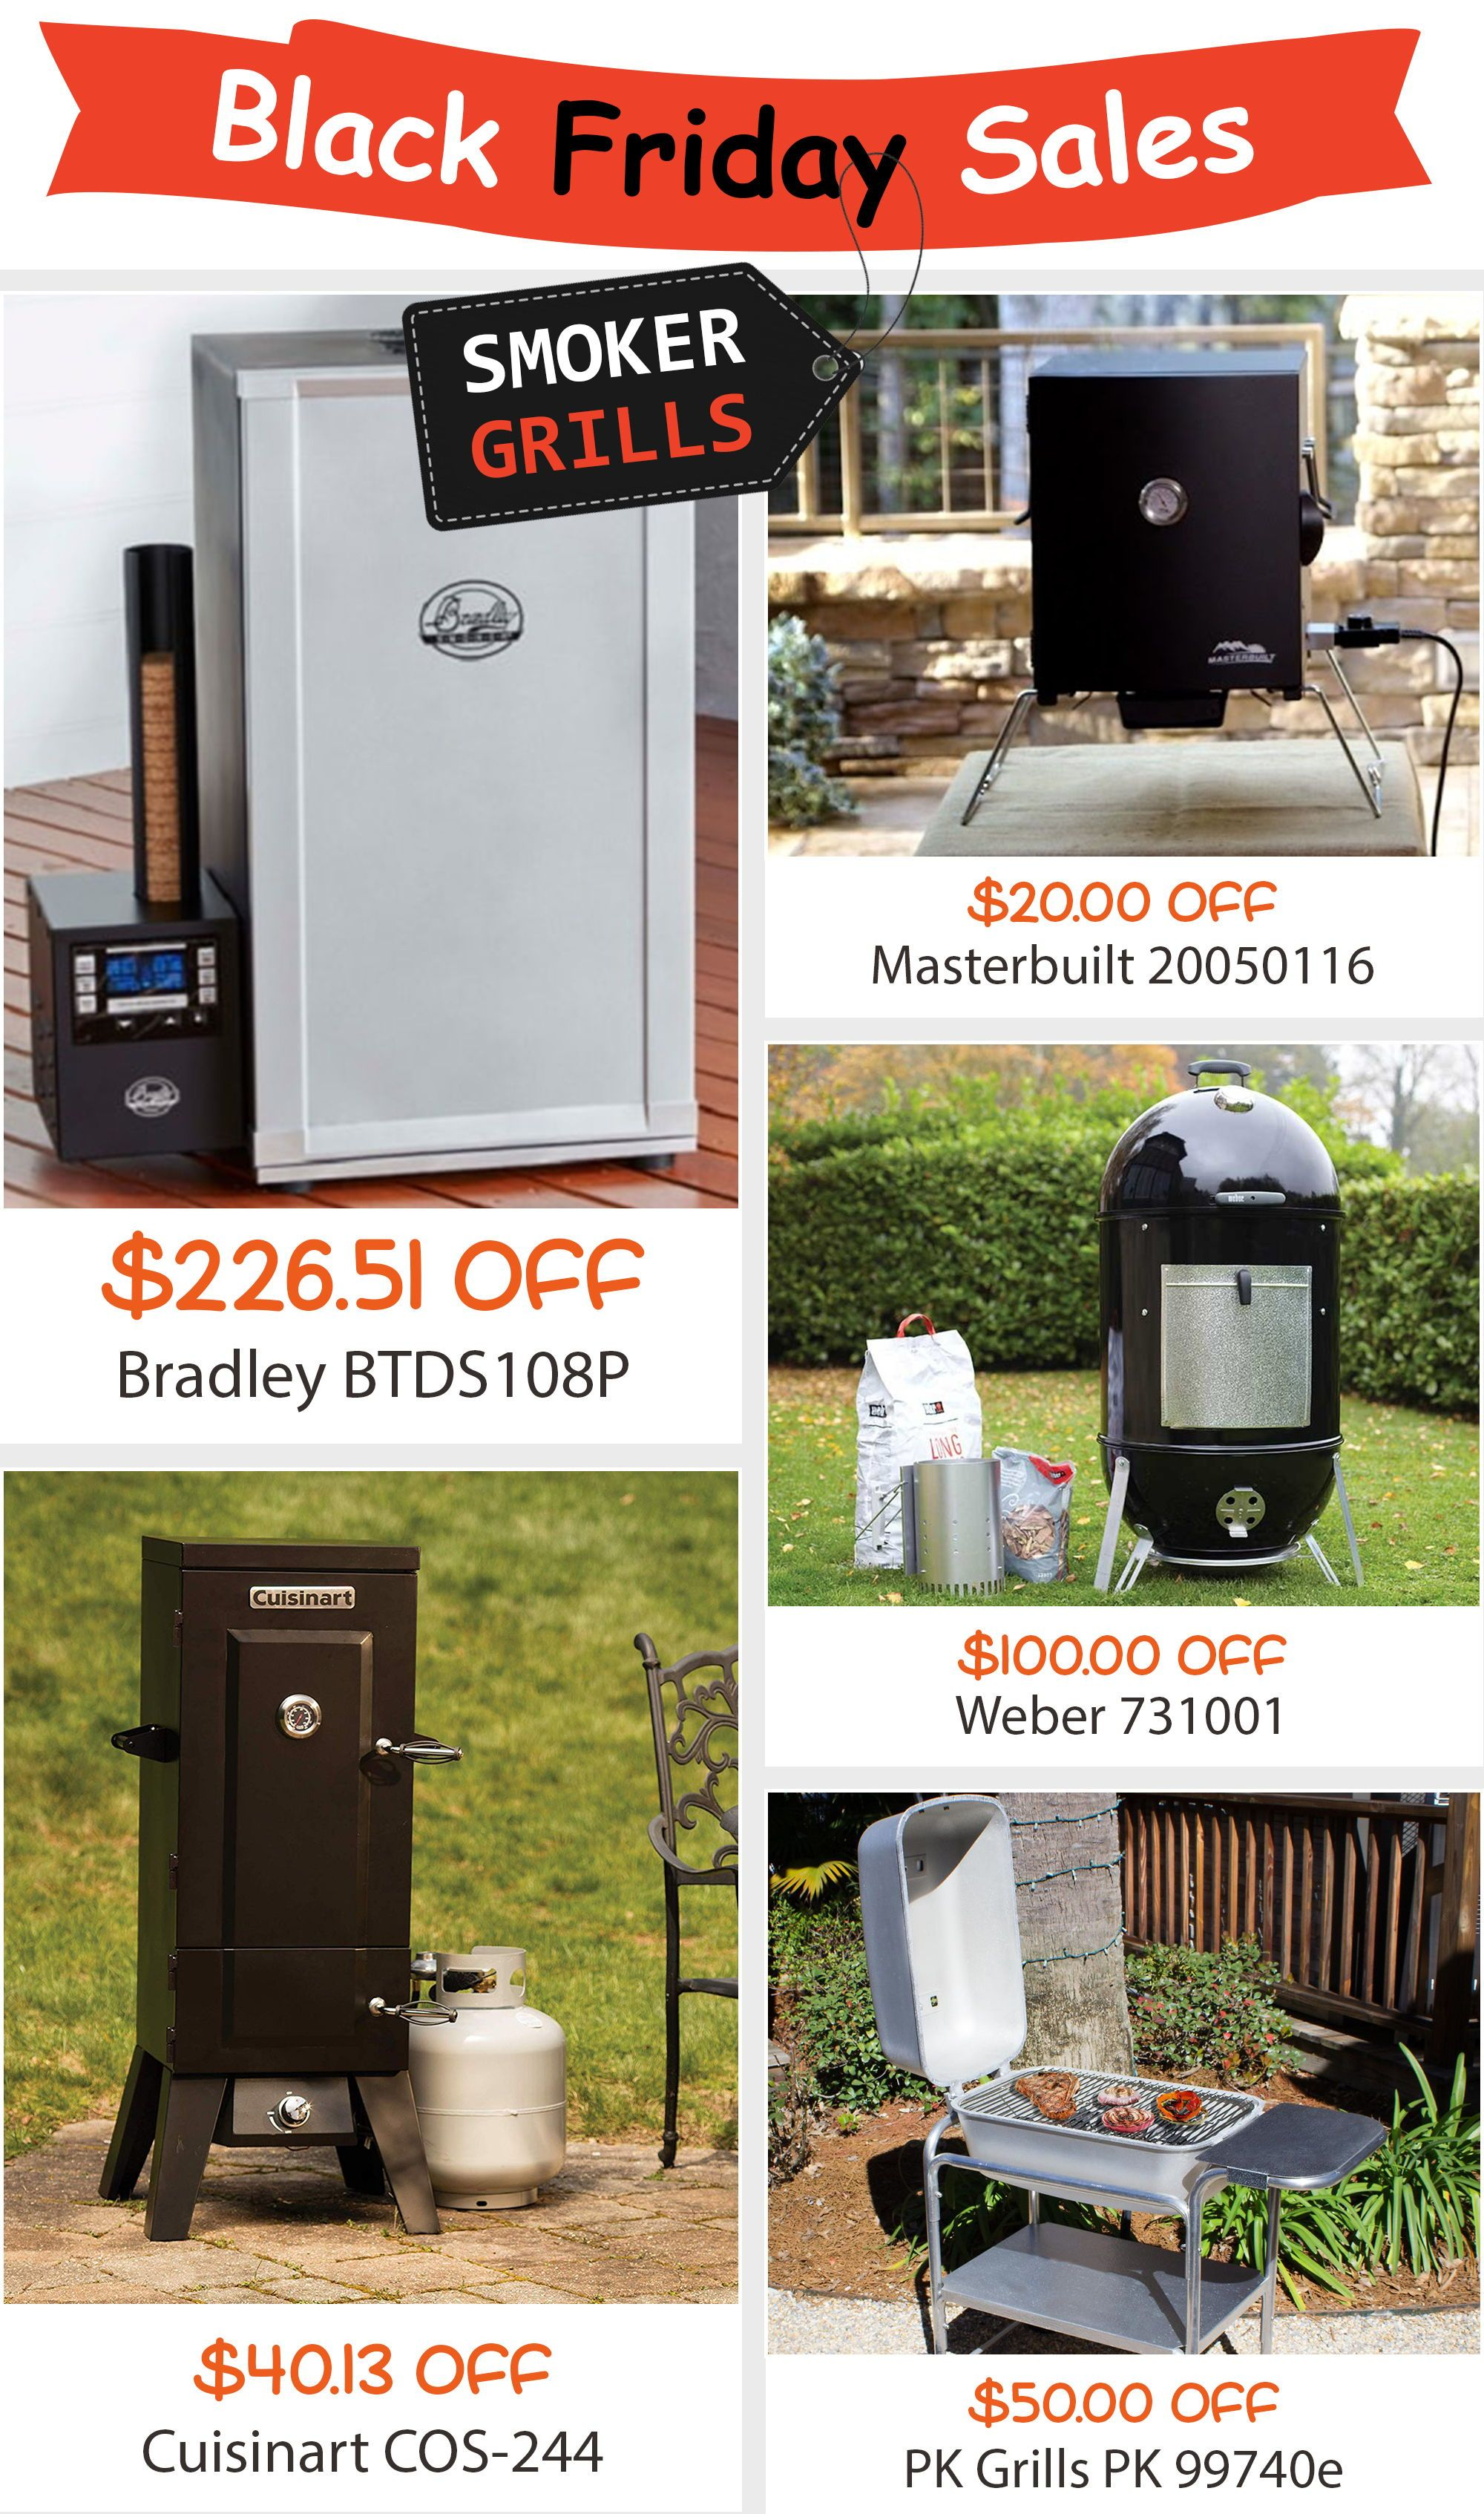 Smoker Grills With Discounts On Amazon Compare Before You Purchase Grills Forever Grilling Green Mountain Grills Louisiana Grills